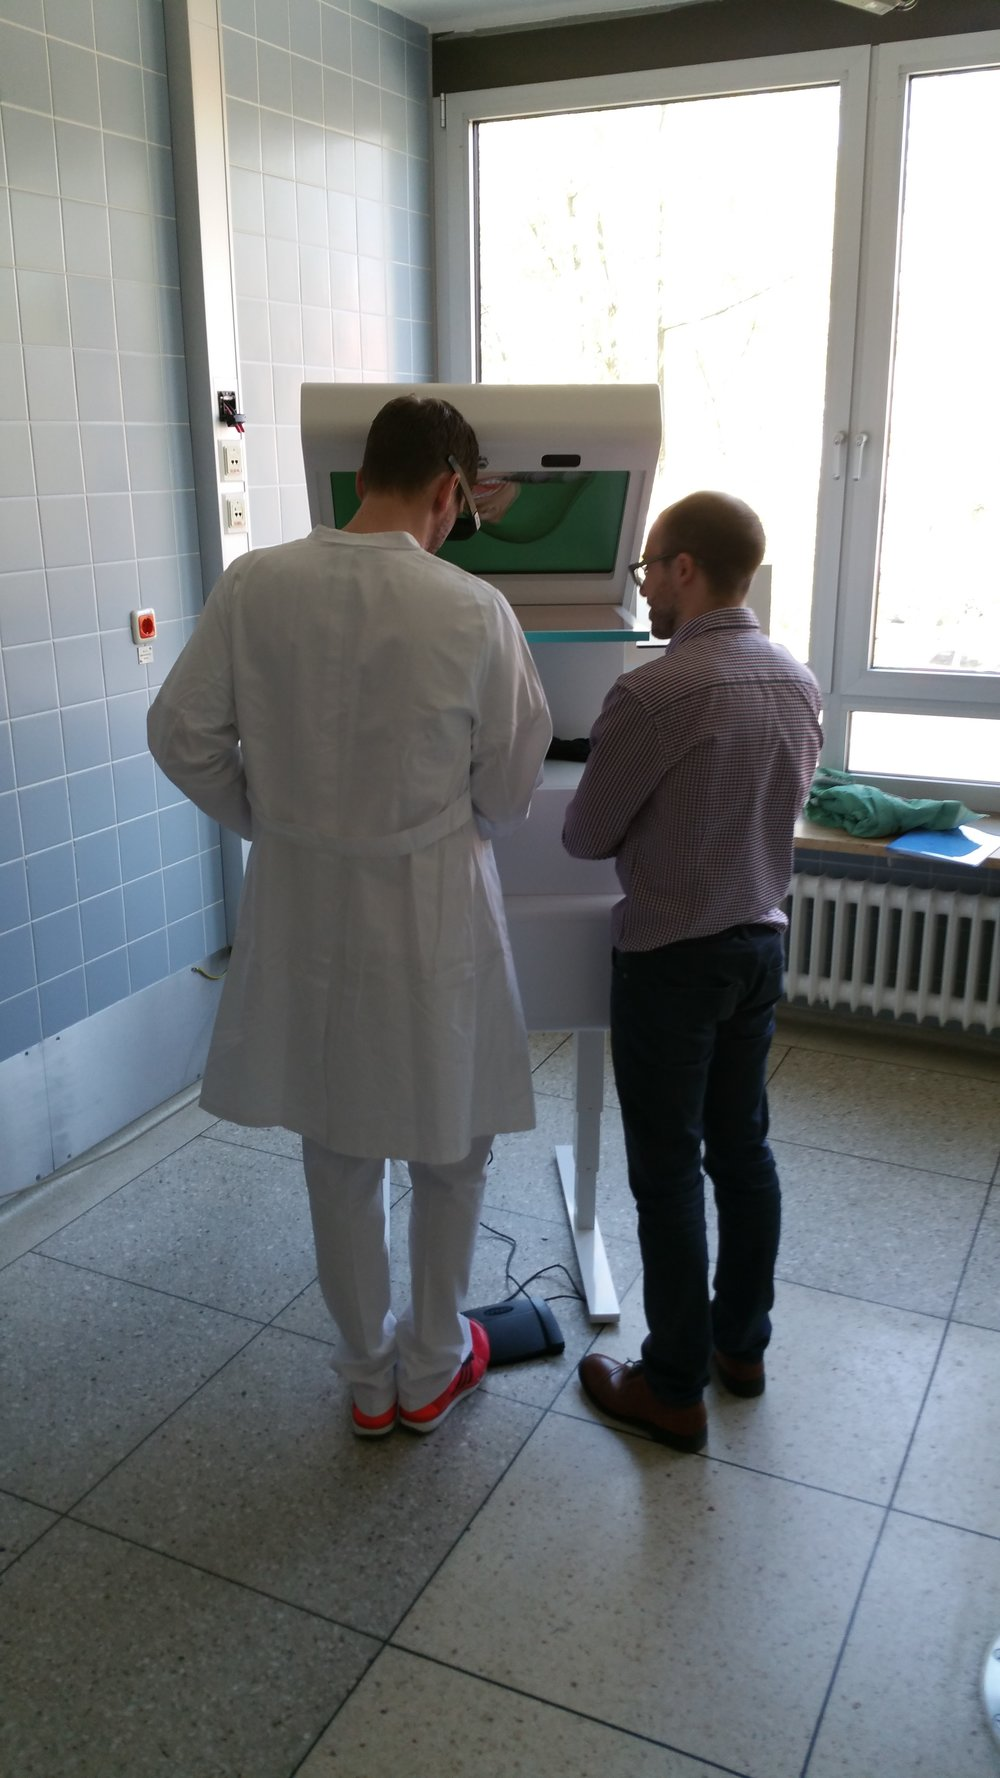 Dr. Christian Schmitt and Jonas Forsslund trying out the simulator